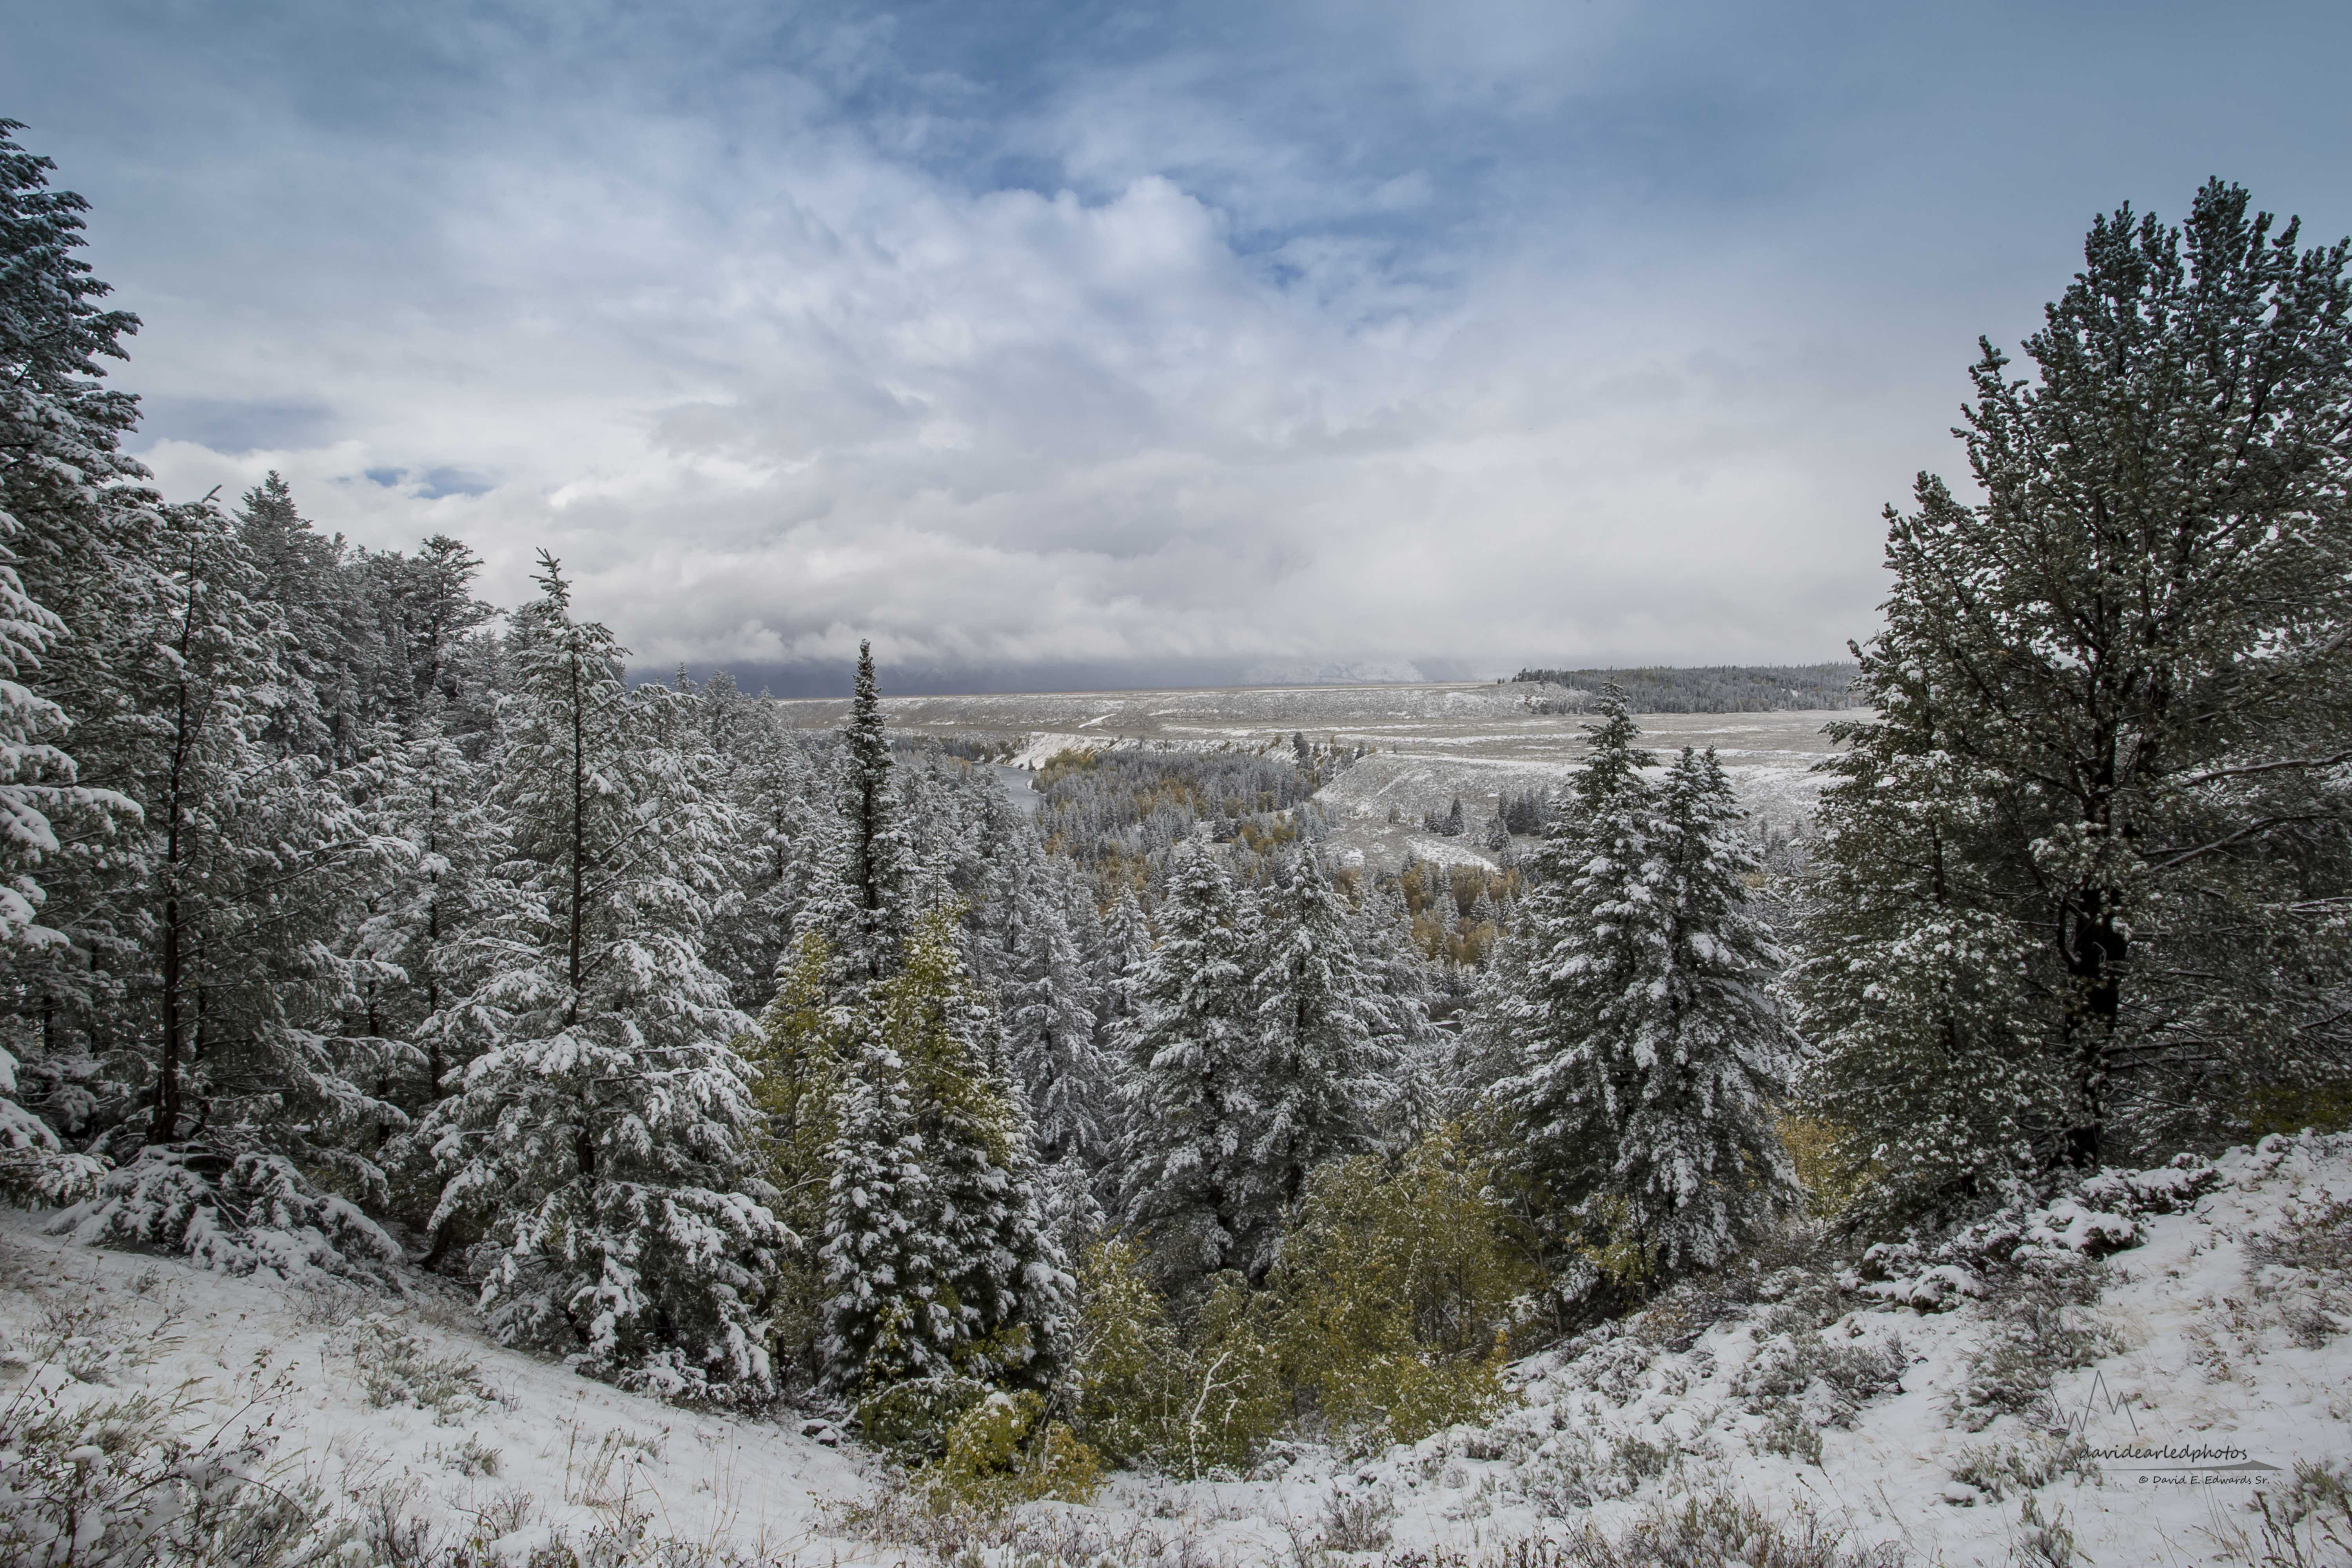 Snowy view in Yellowstone